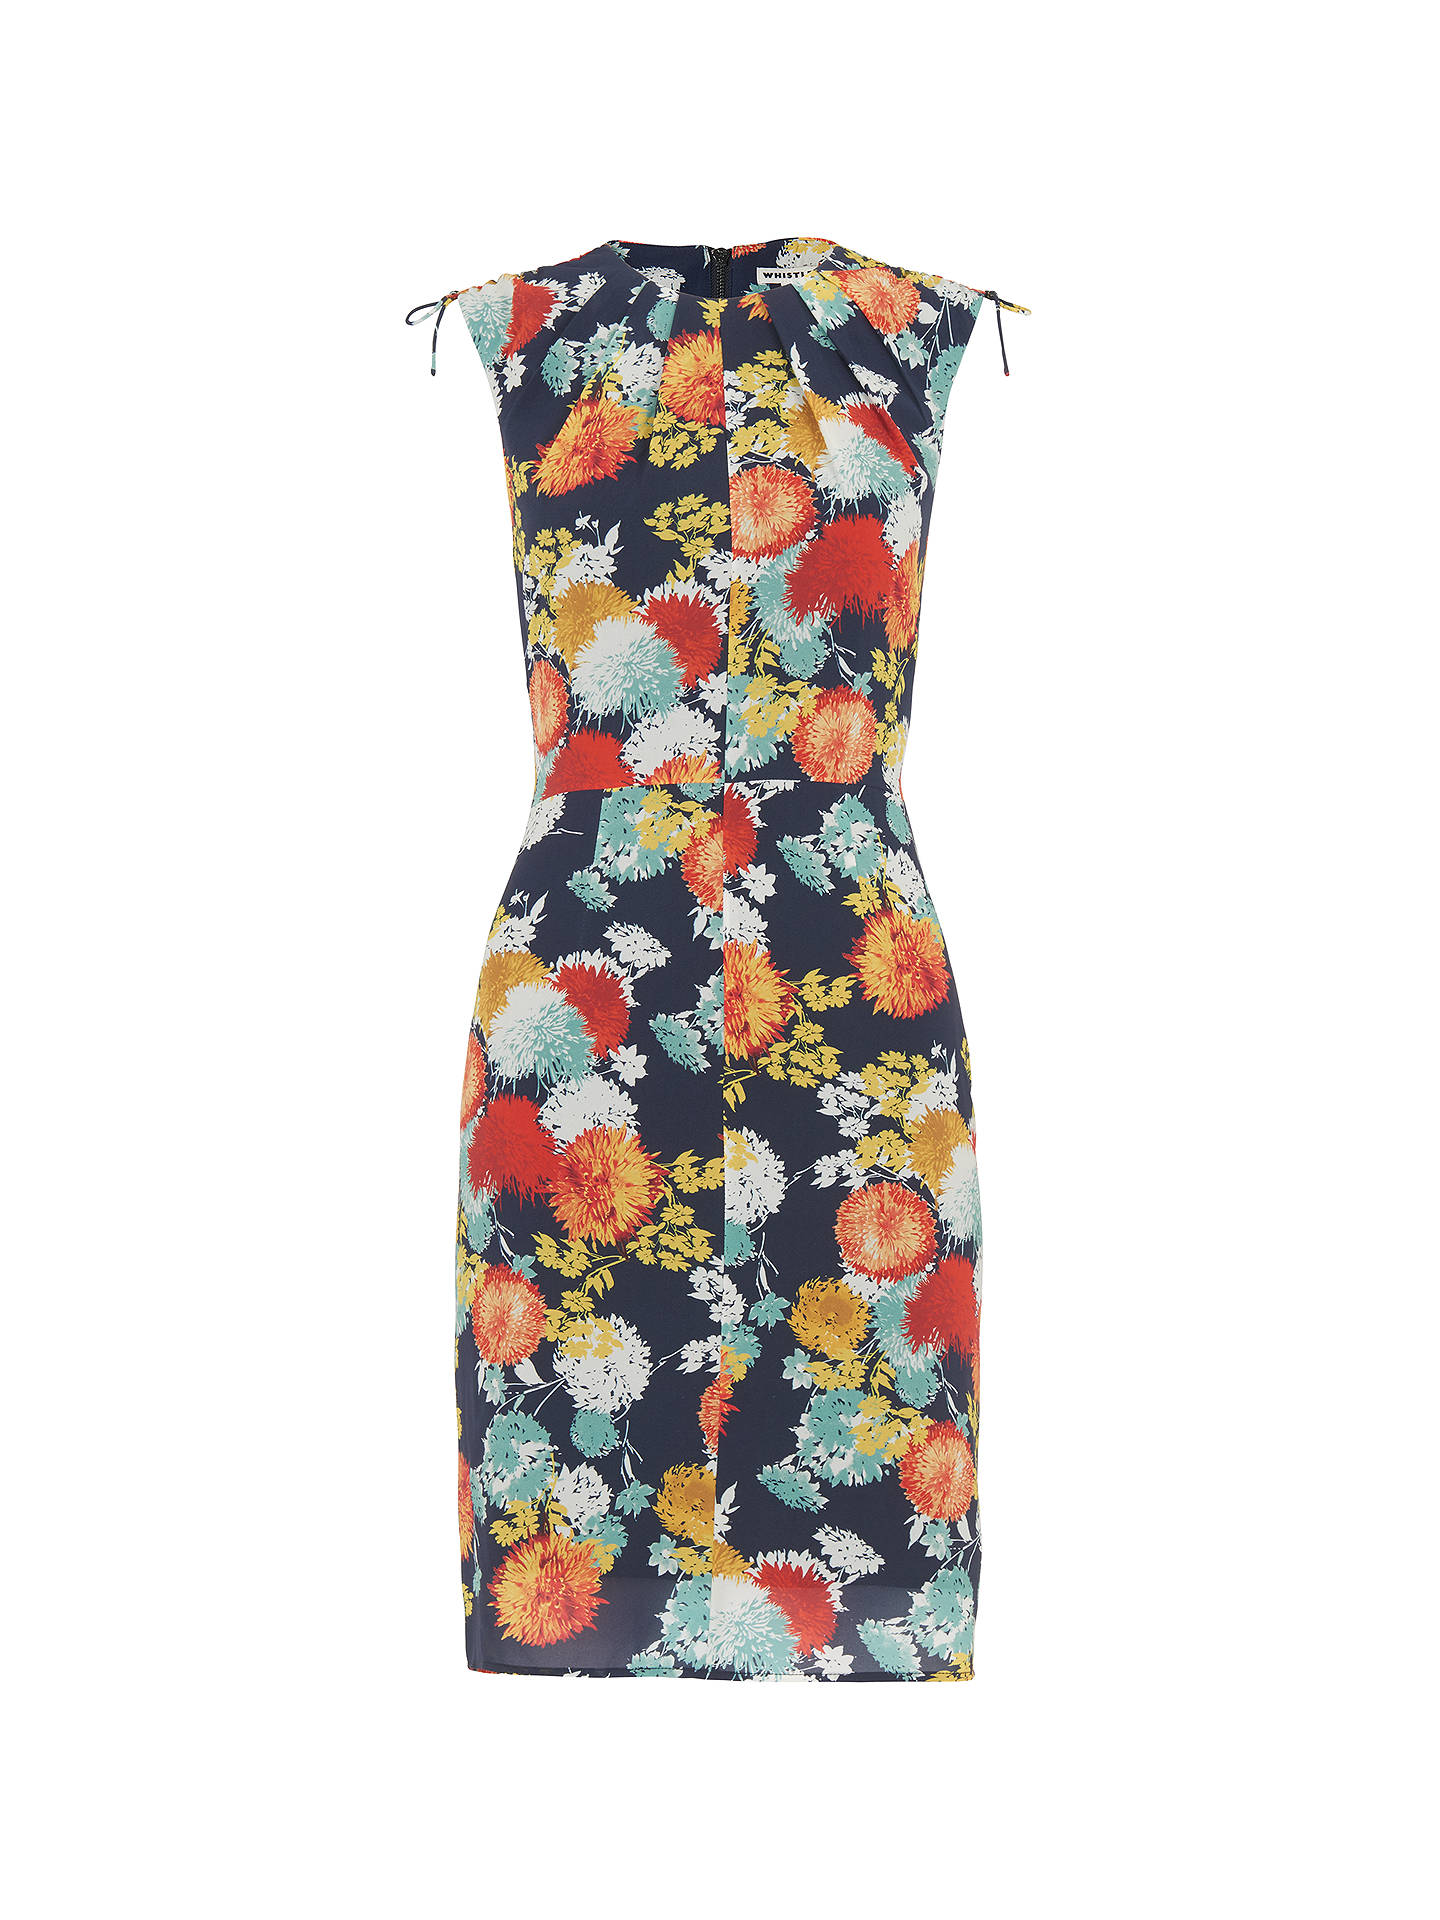 BuyWhistles Floral Print Bodycon Dress, Multi, 6 Online at johnlewis.com